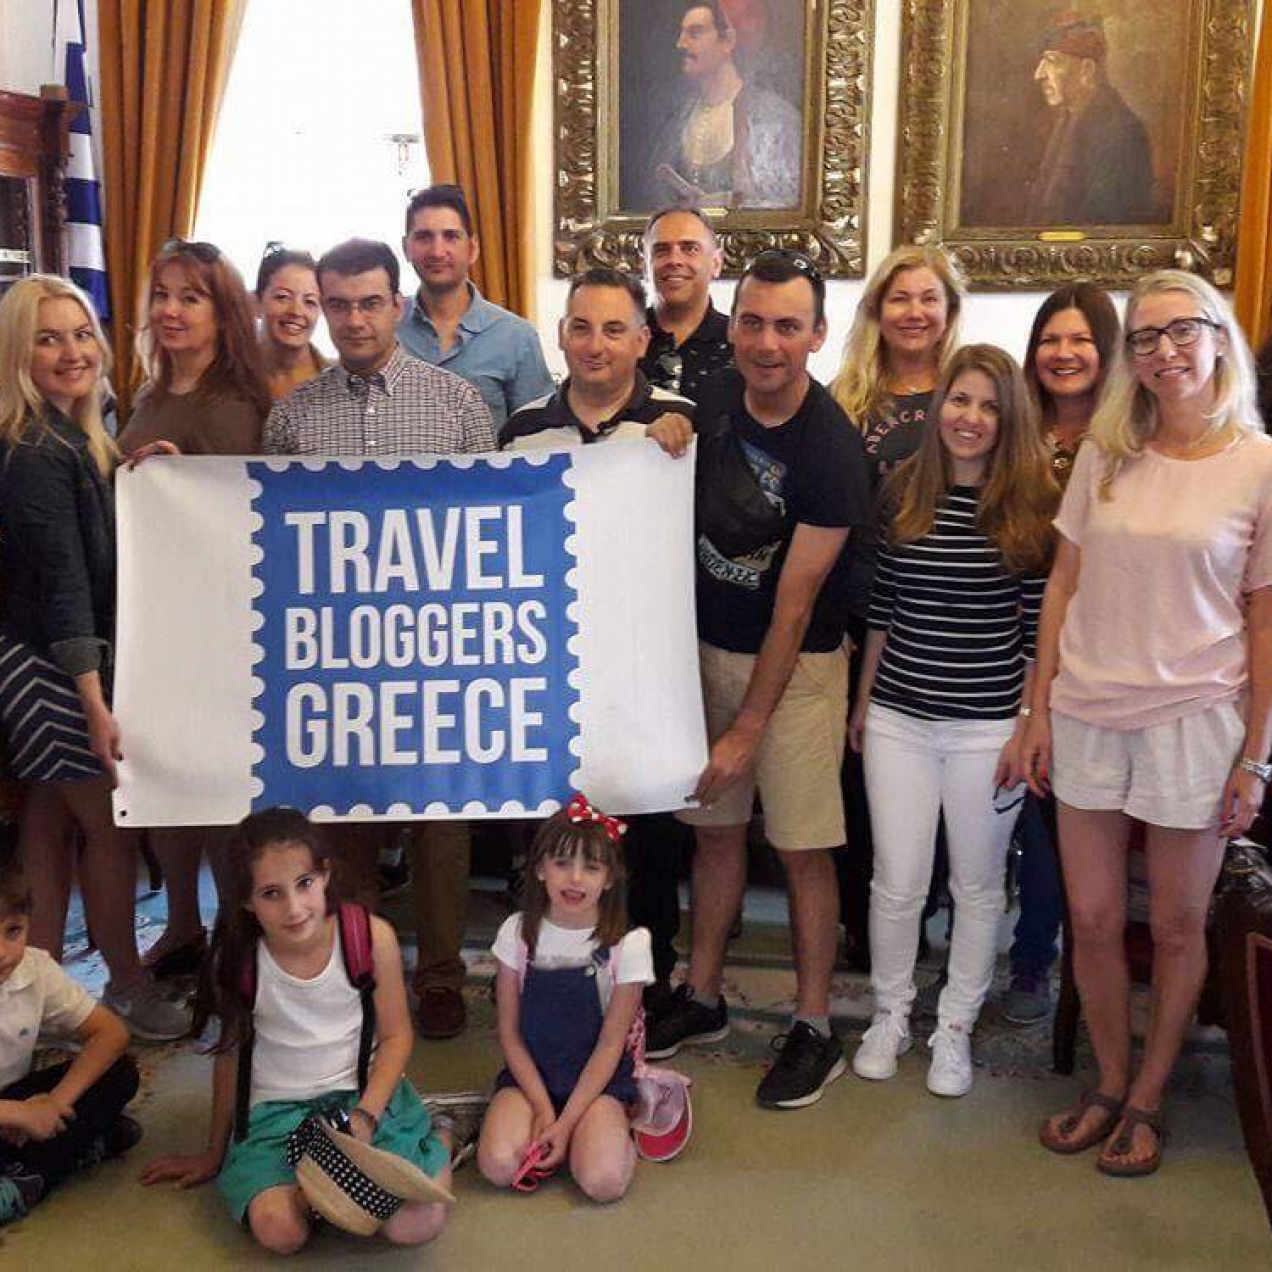 What Travel Bloggers Greece is really all about